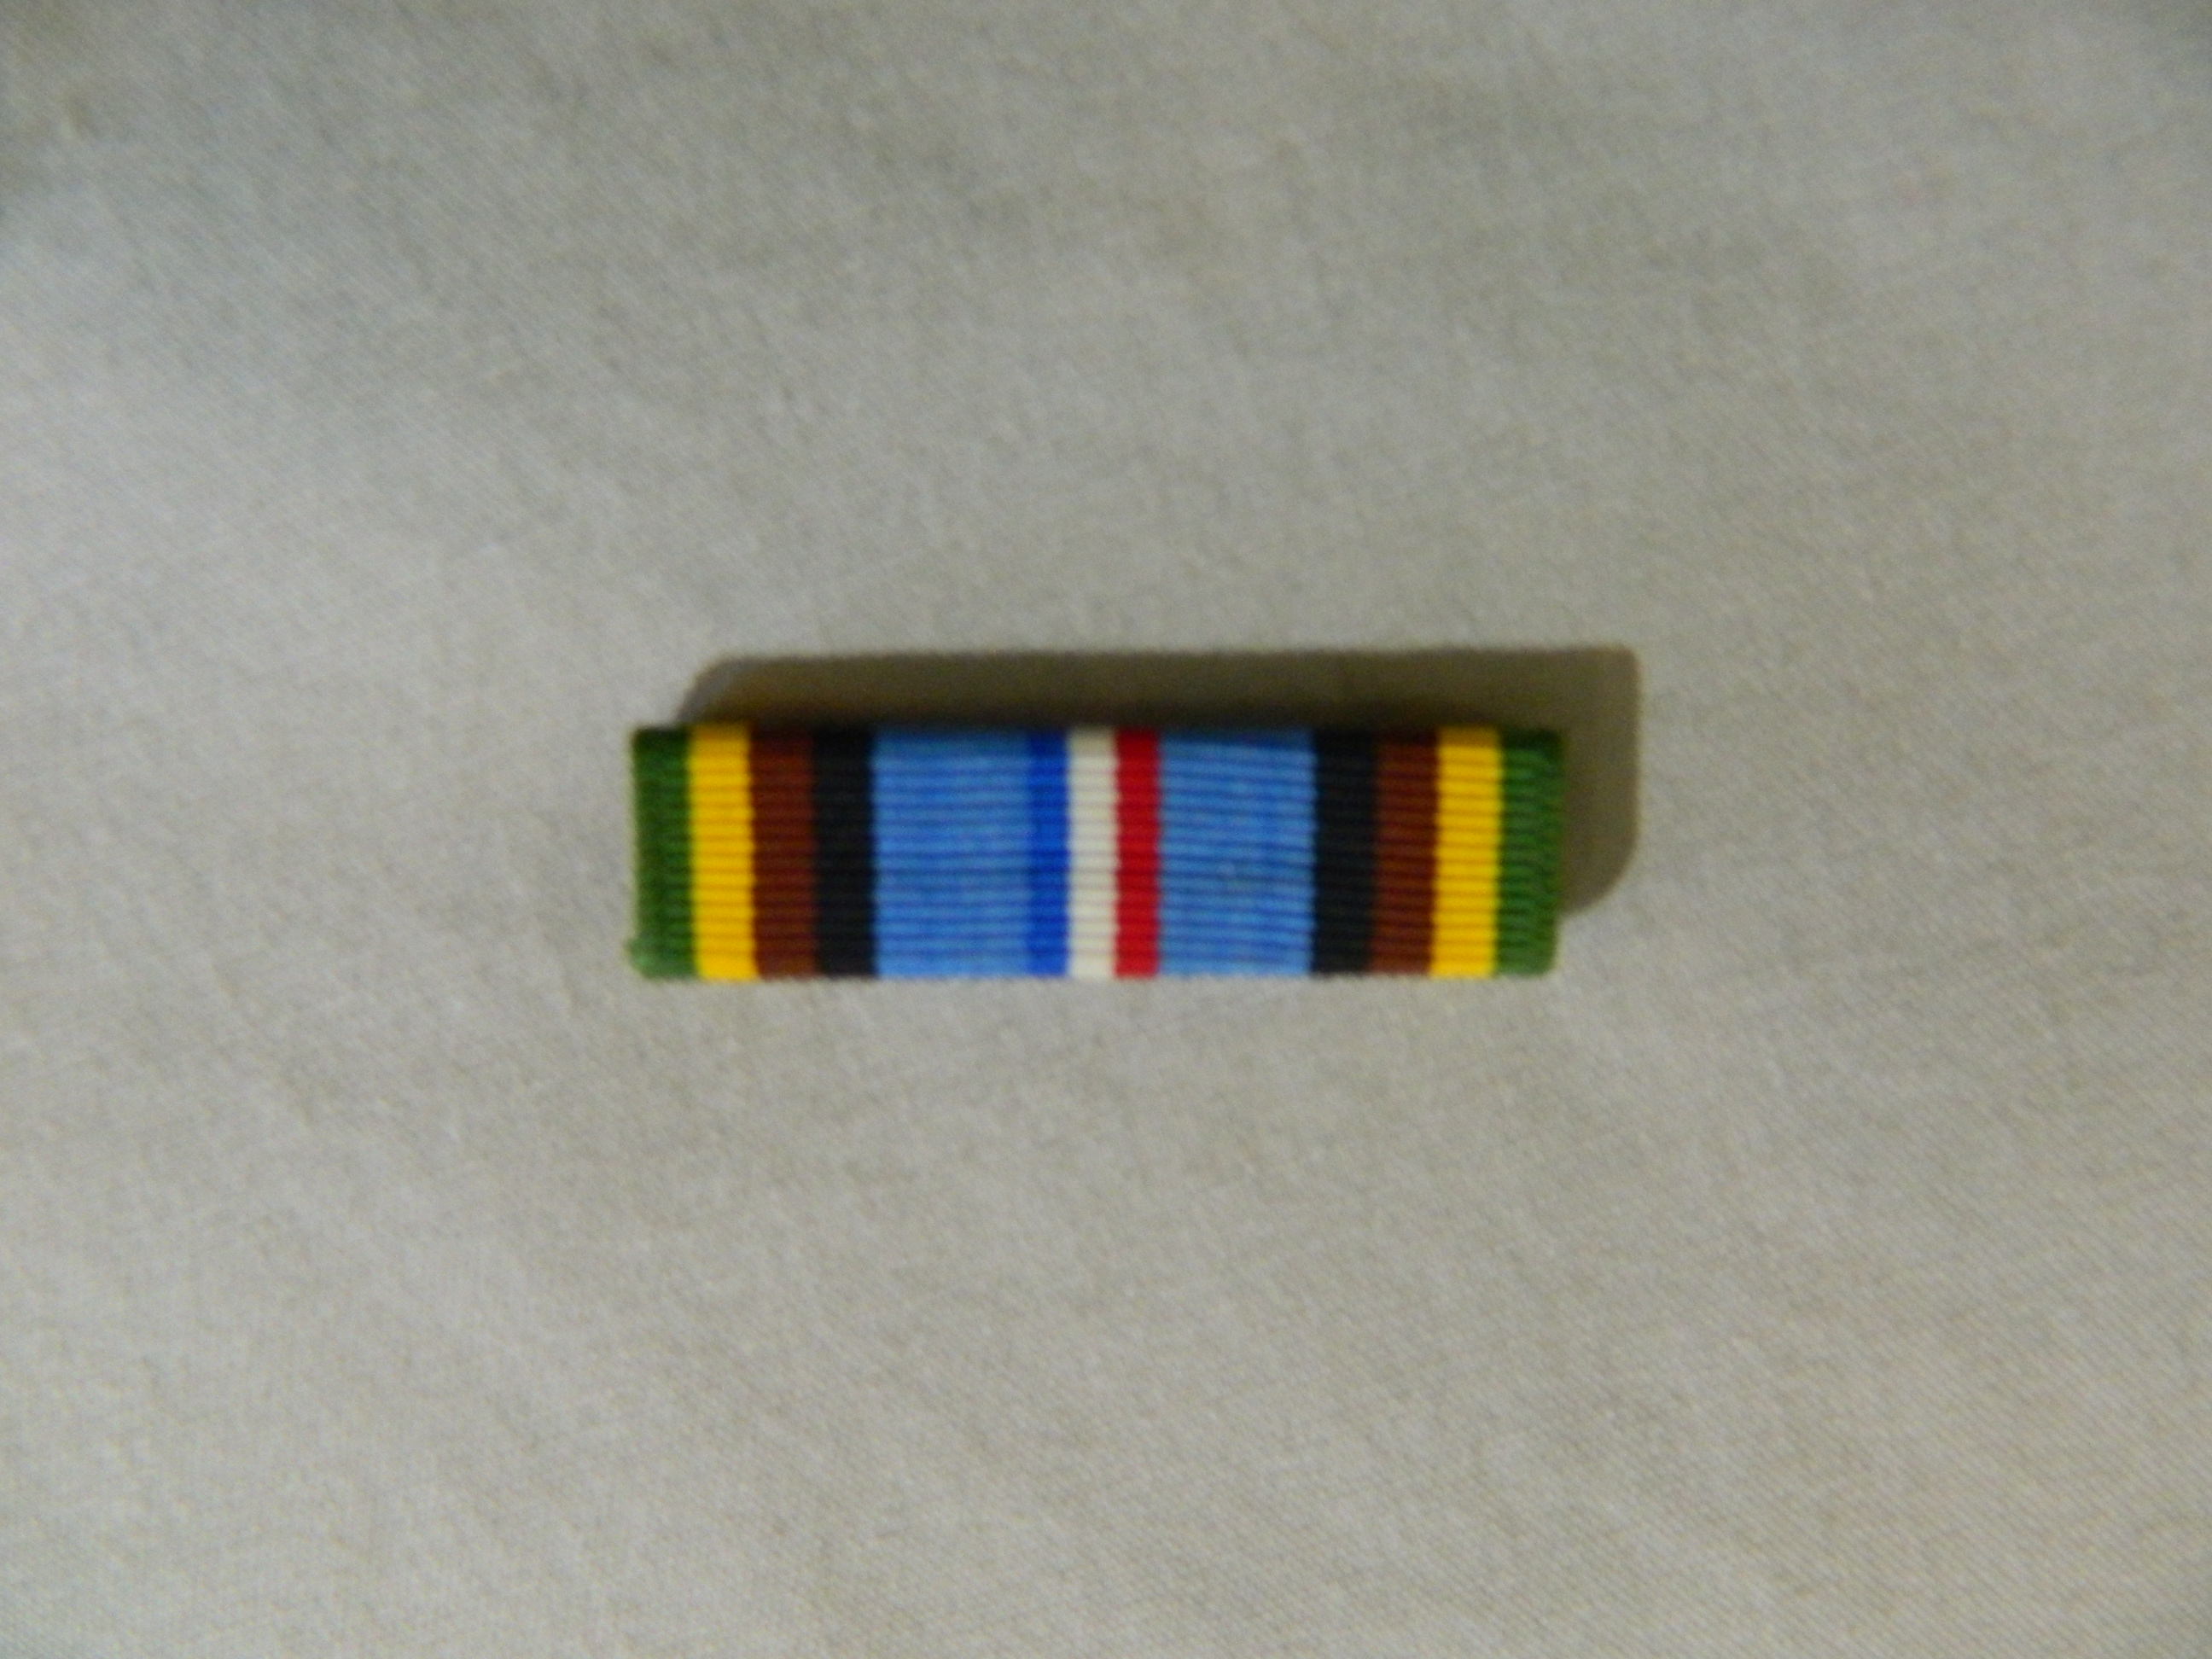 Ribbon: Armed Forces Expeditionary Medal